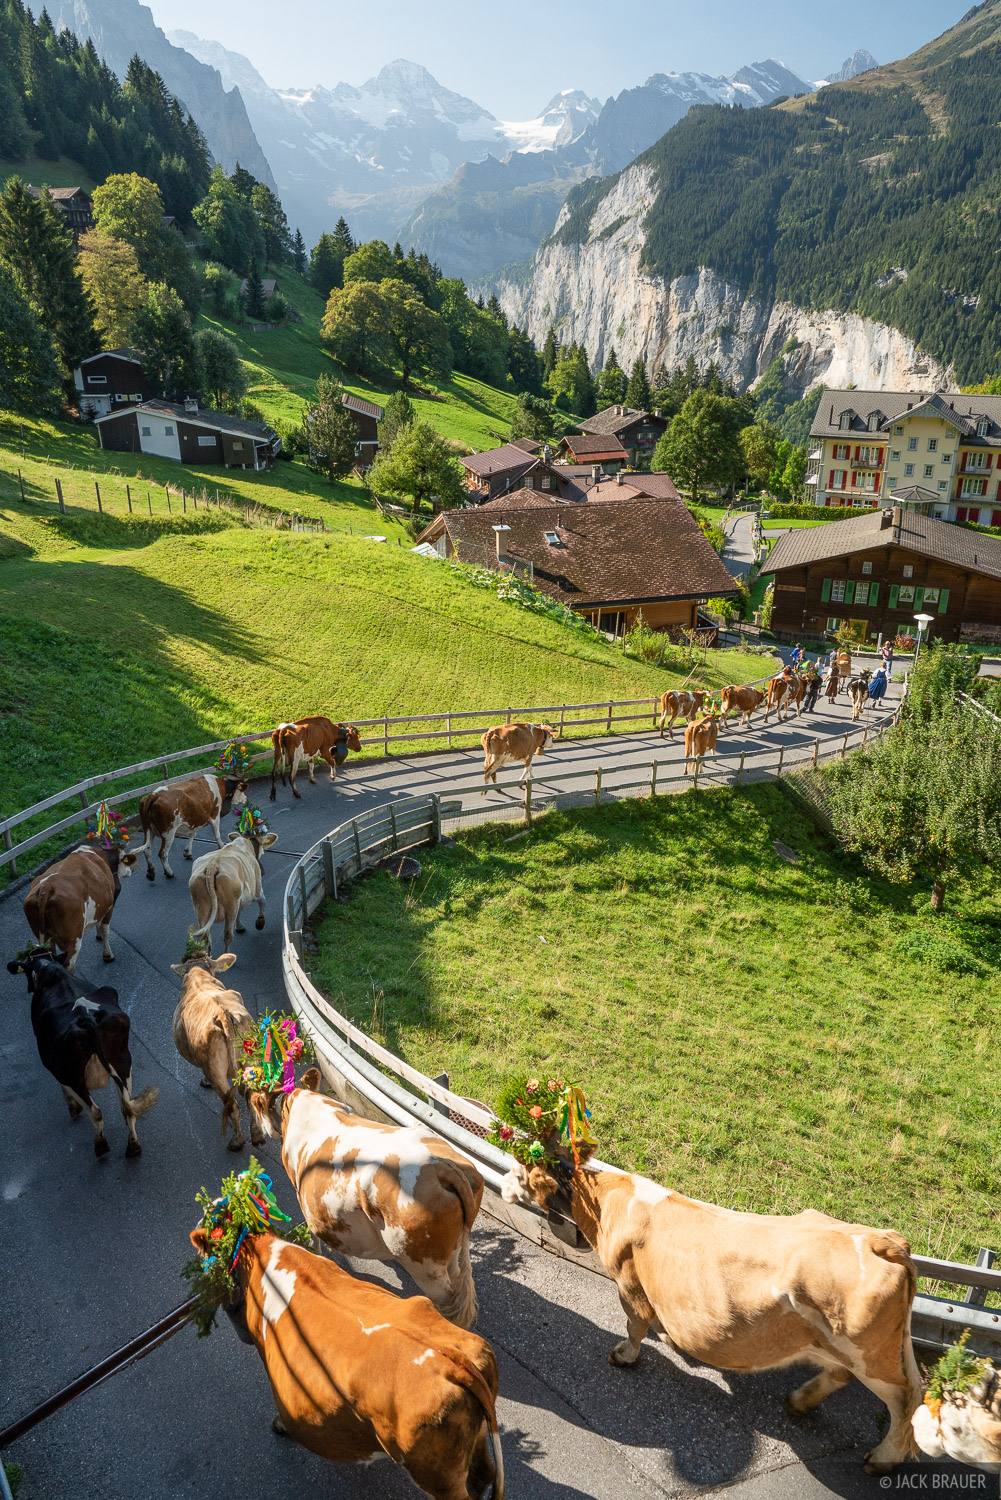 Bernese Alps, Lauterbrunnental, Switzerland, Wengen, cows, Bernese Oberland, photo